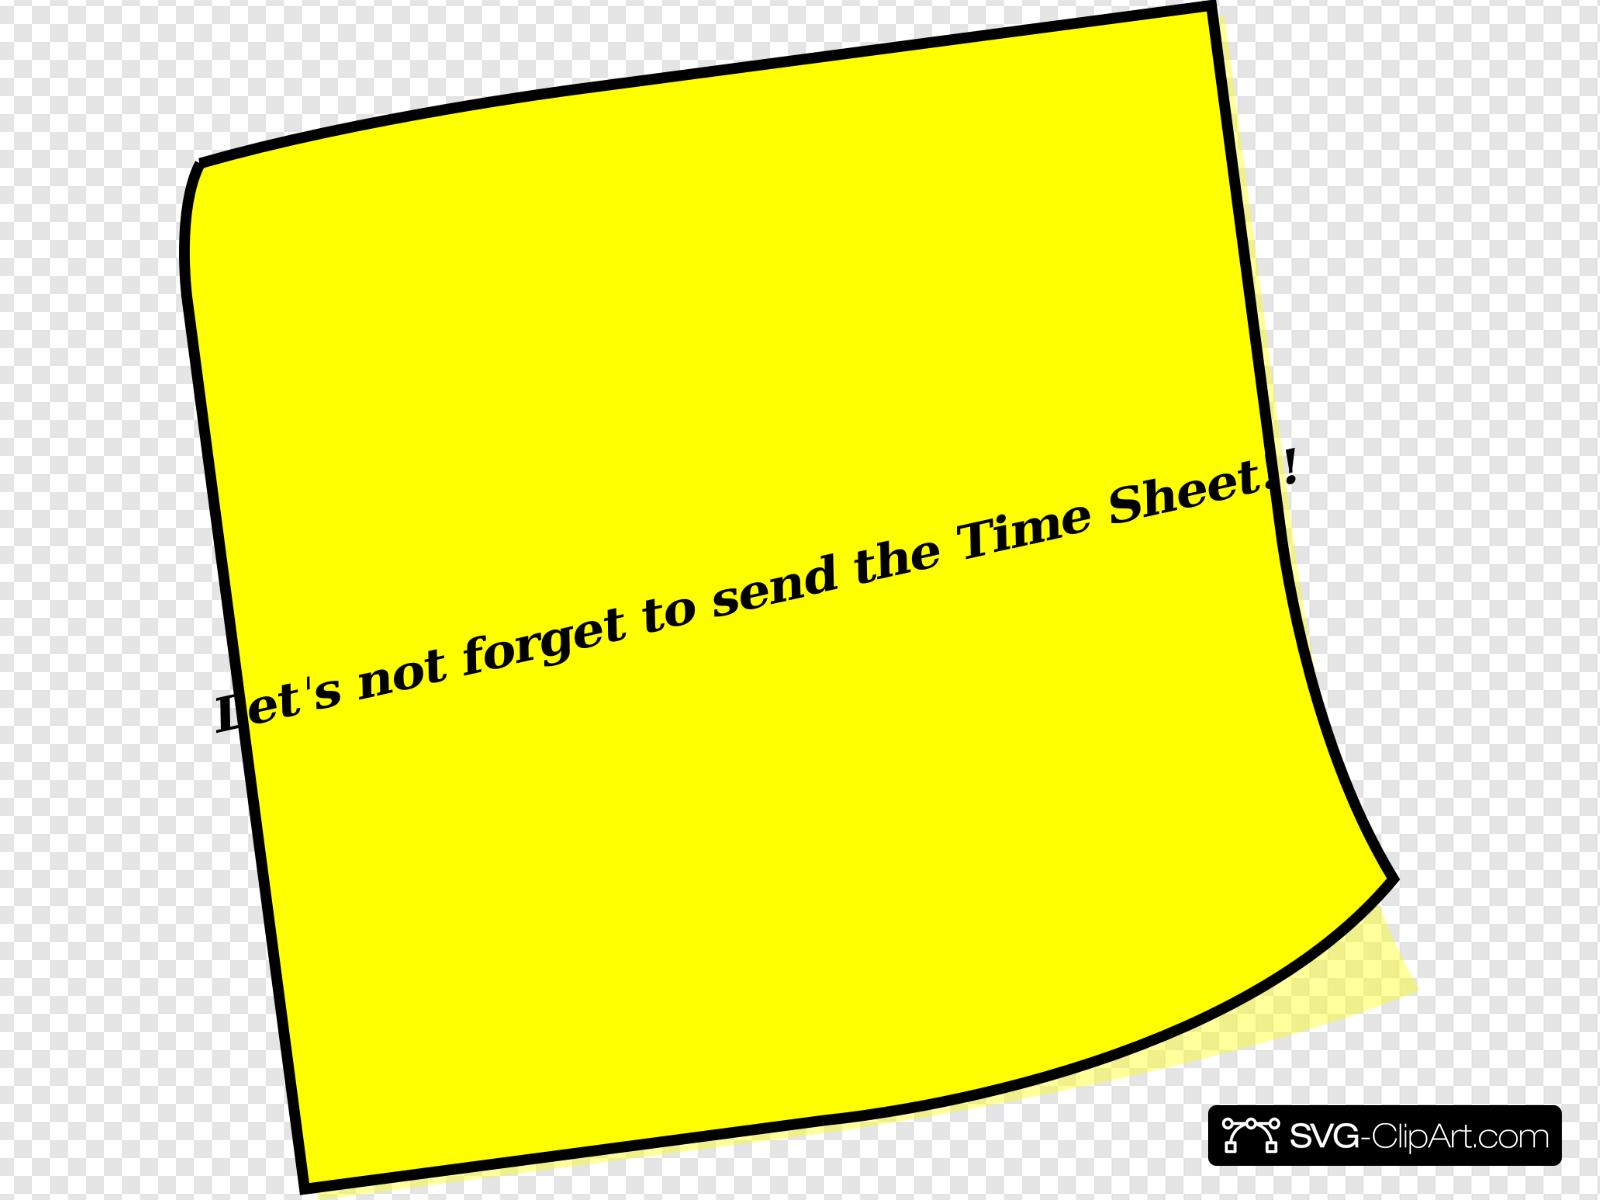 Timesheet Reminder Clip art, Icon and SVG.